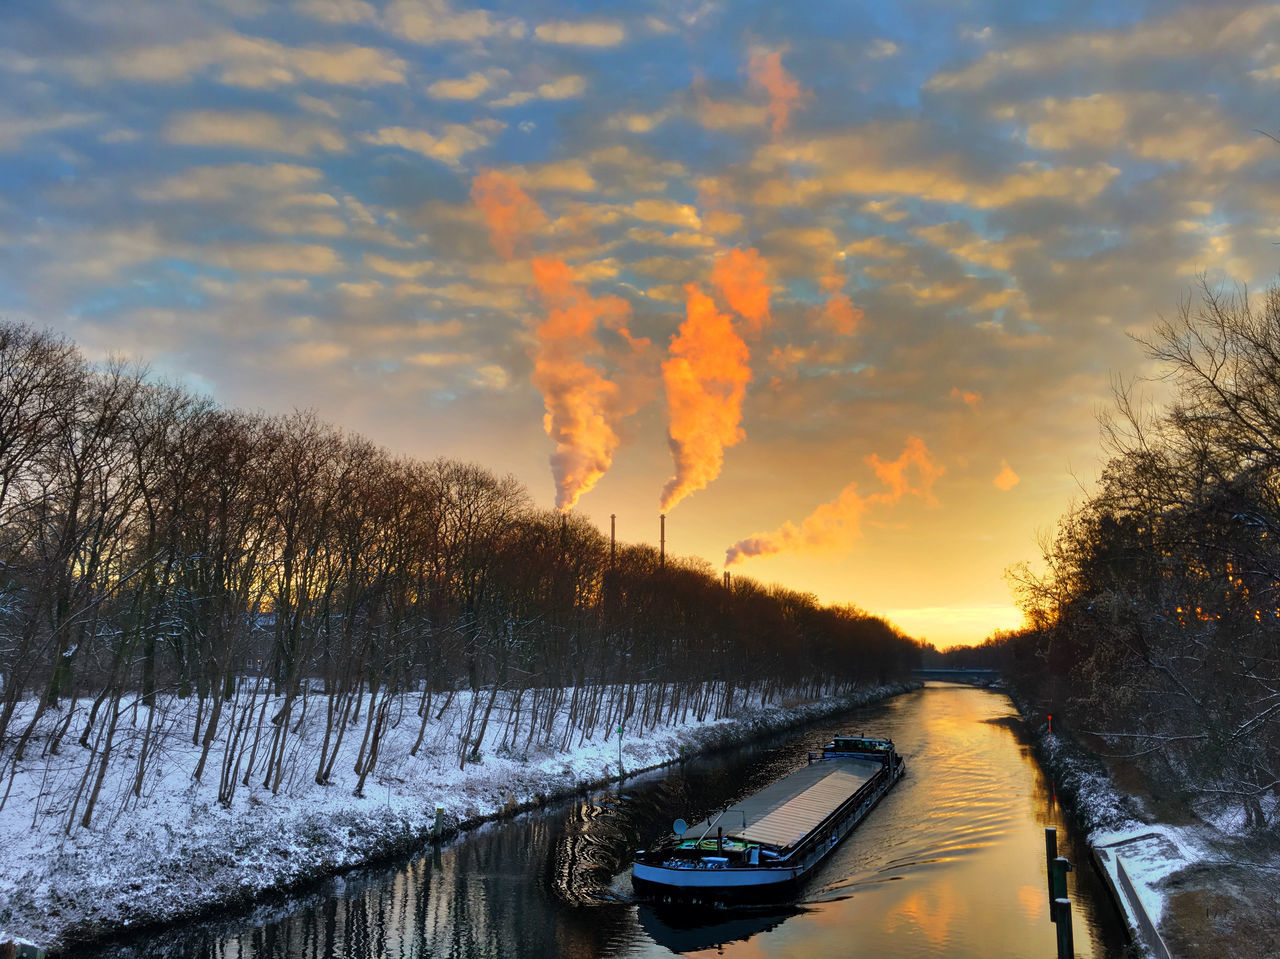 Teltow canal at sunset Artificial Watercourse Bulk Carrier Canal Cargo Ship Carrier Chimney Chimneys Freighter Navigation Reflections Reflections In The Water Ship Shipping  Sky Sky And Clouds Smokestack Smokestacks Snow Snow ❄ Sun Sundown Sunset Sunshine Transport Transport Ship